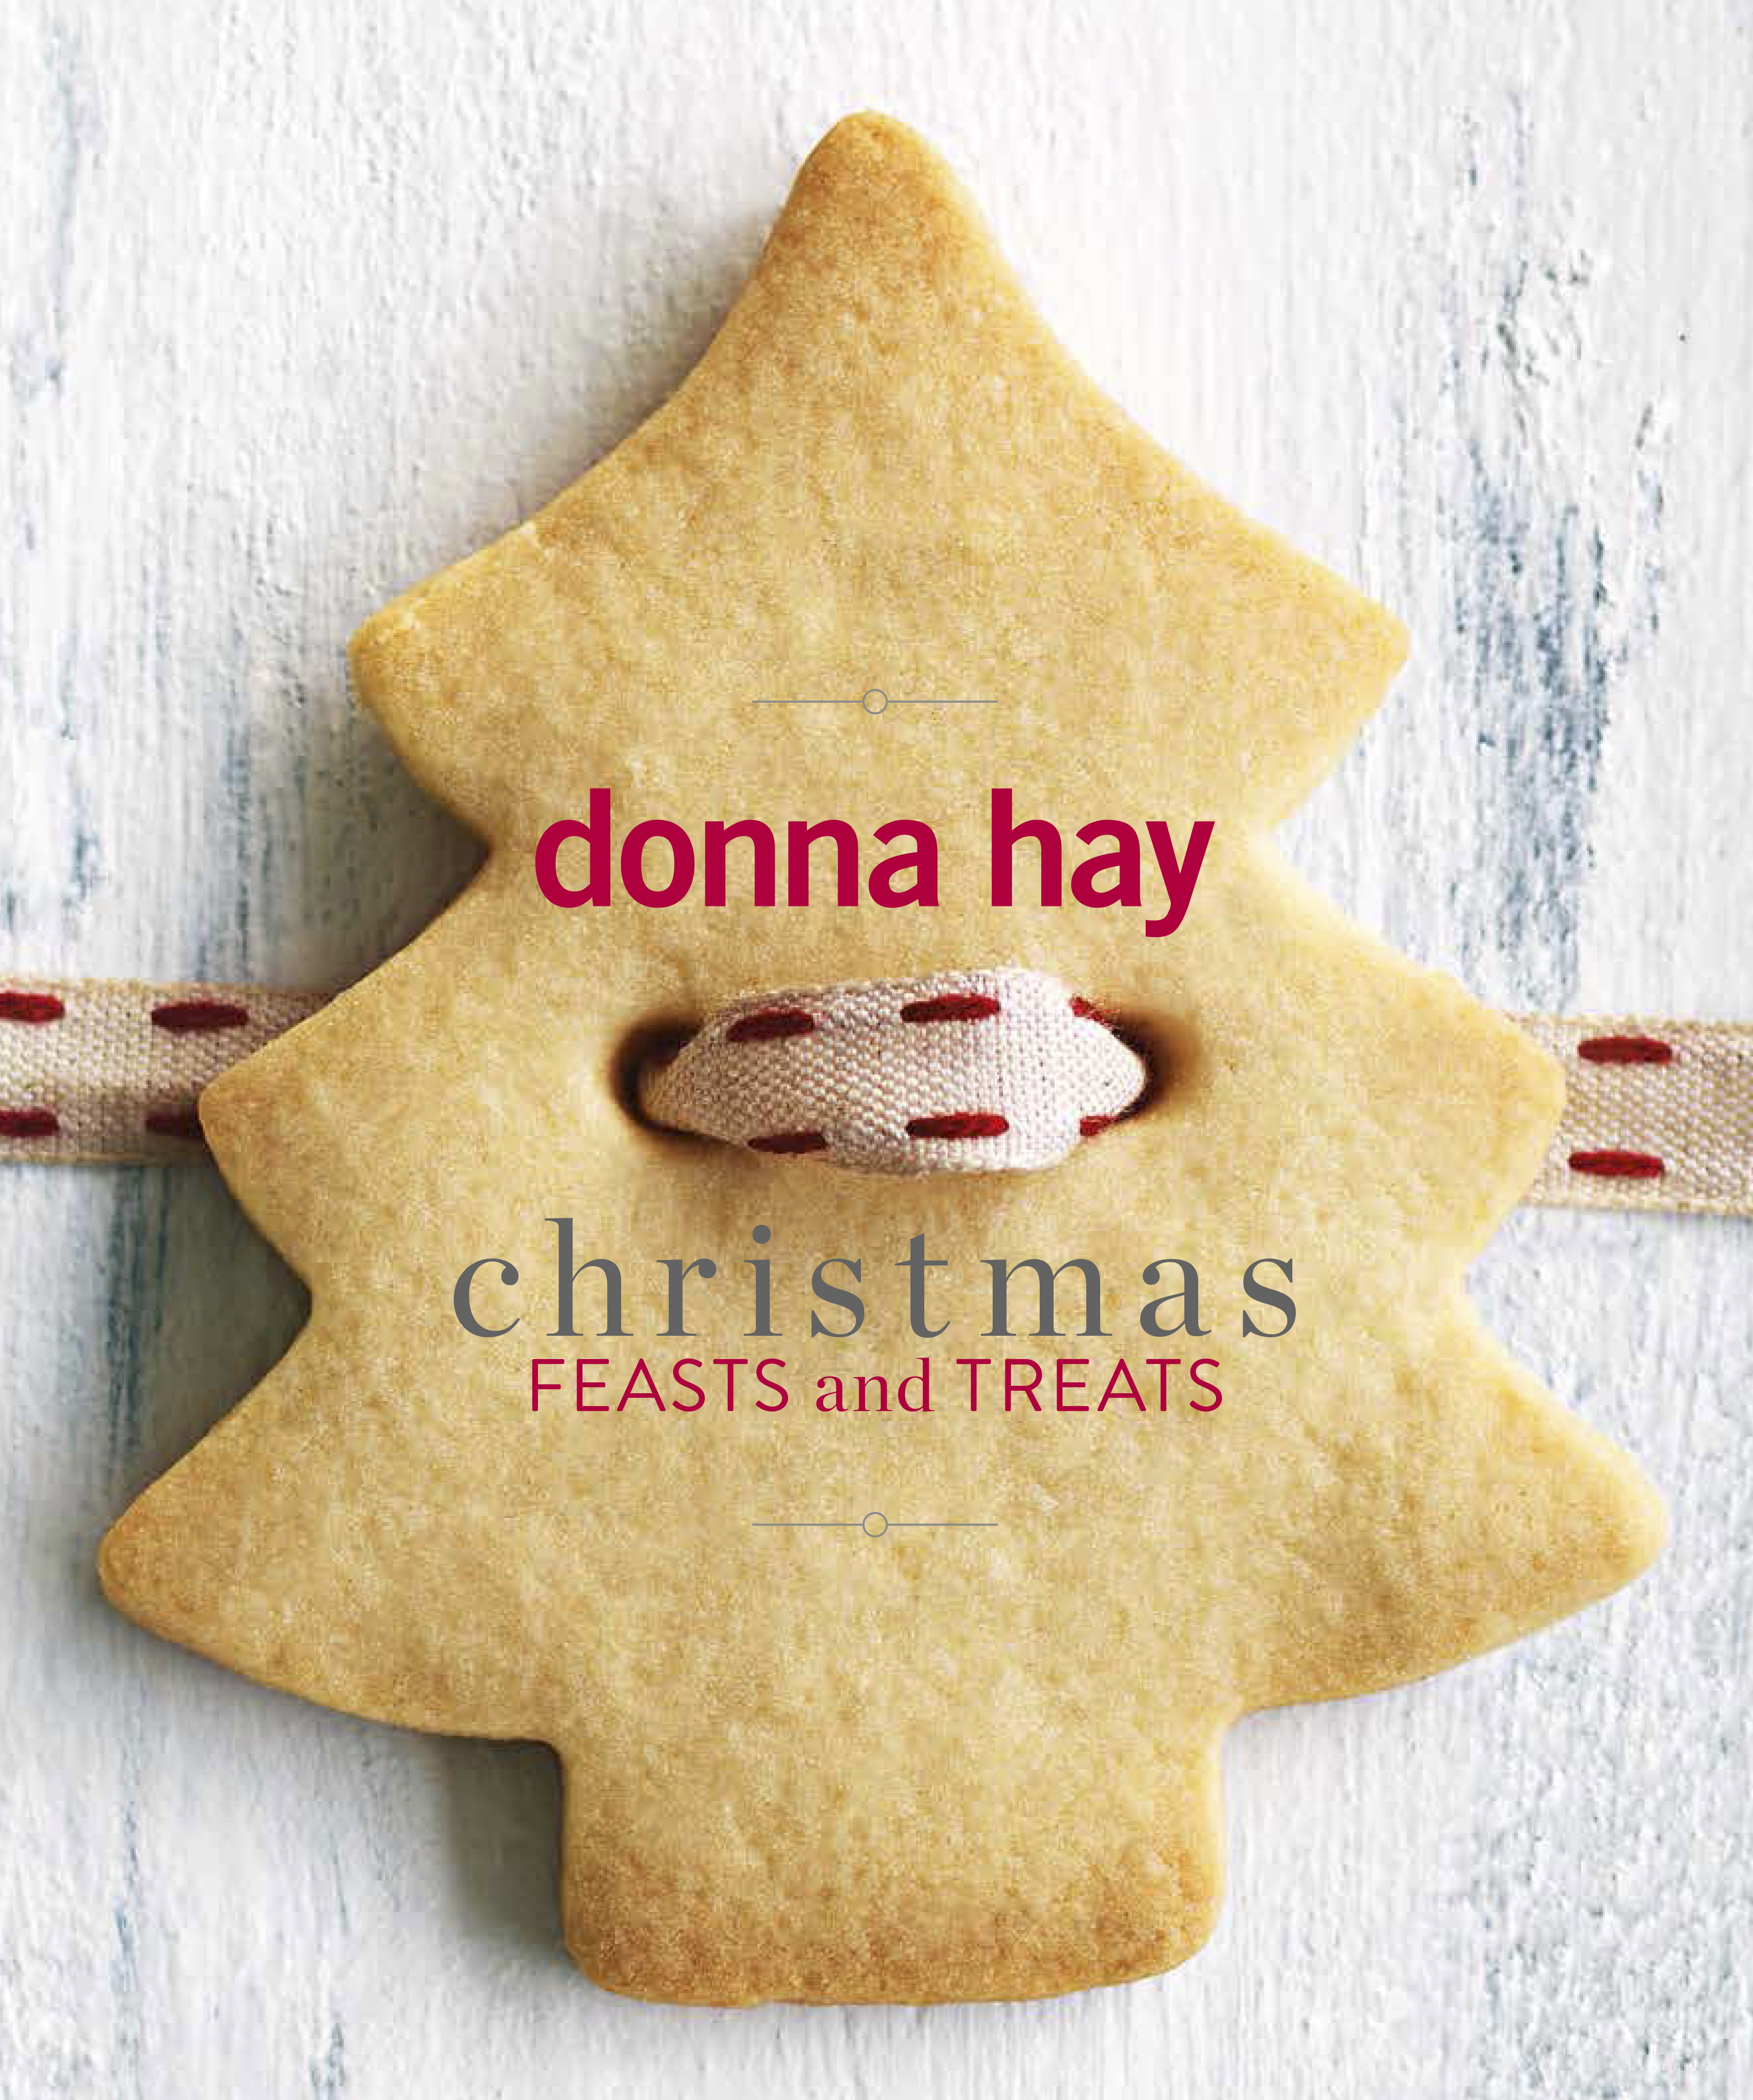 Media Release Christmas Feasts And Treats By Donna Hay